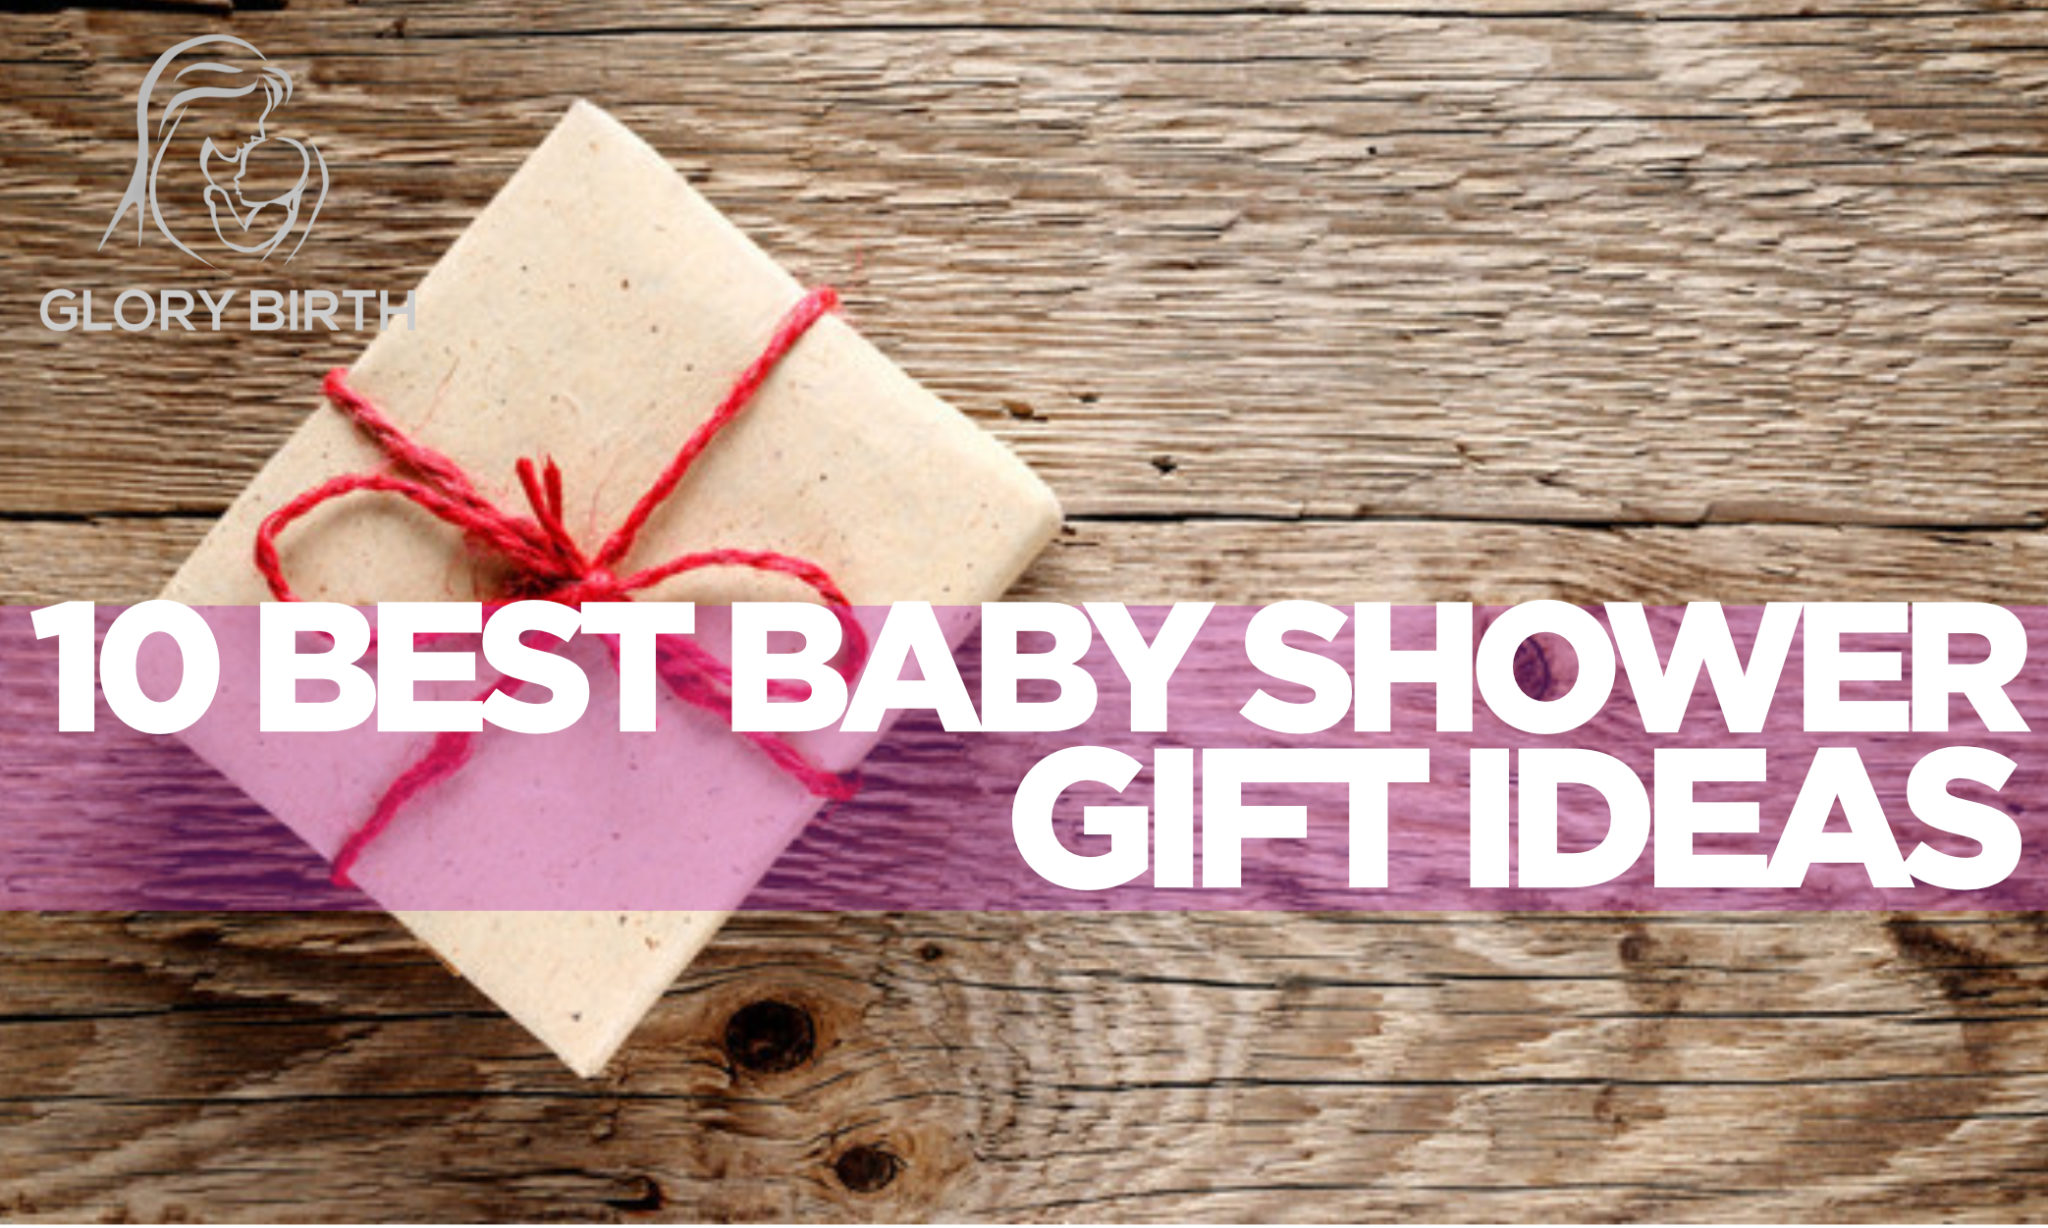 Baby Gift Ideas For Someone Who Has Everything : Special baby shower gift ideas